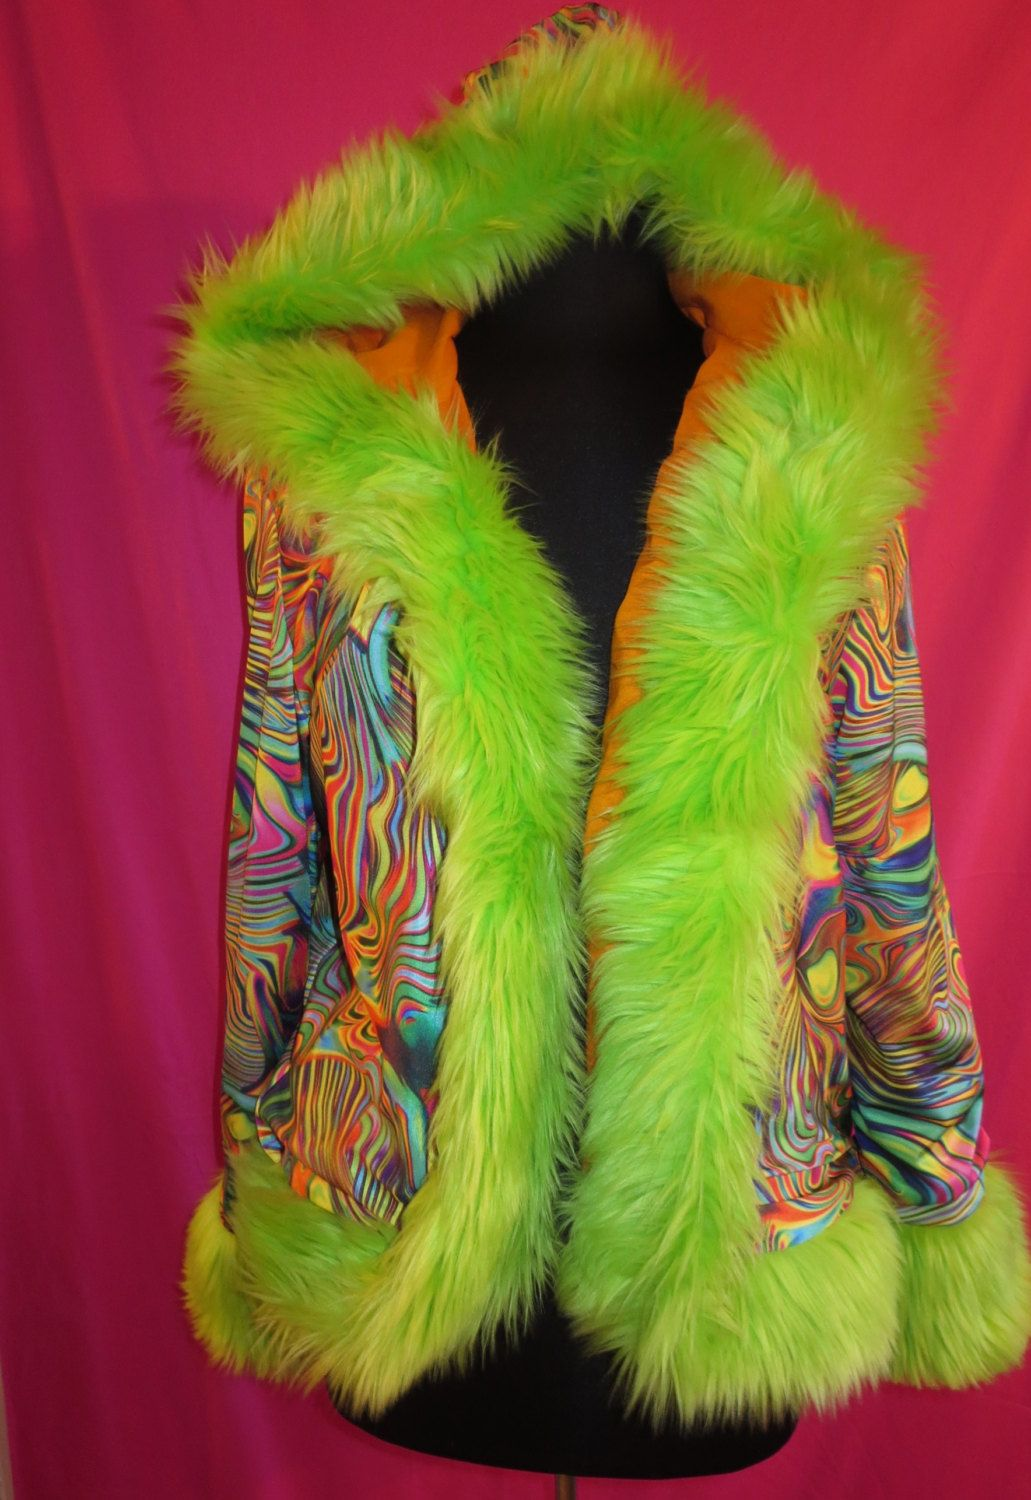 Psychedelic, Abstract, Colorful Hooded Jacket With Lime Green Fur Trim Unisex Burning Man Wear by outoftheloftclothing on Etsy